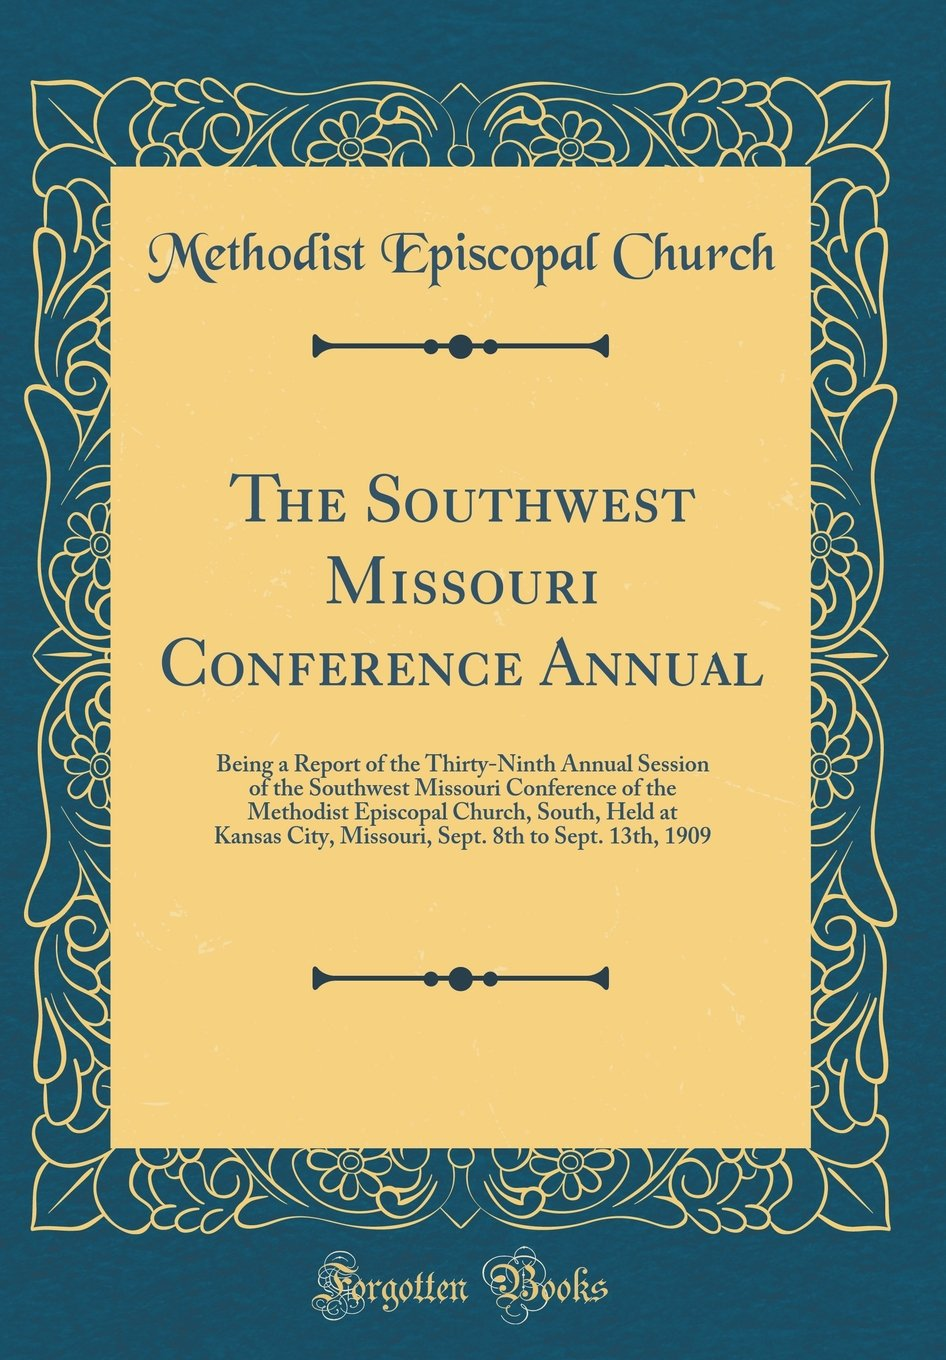 The Southwest Missouri Conference Annual: Being a Report of the Thirty-Ninth Annual Session of the Southwest Missouri Conference of the Methodist ... 8th to Sept. 13th, 1909 (Classic Reprint) ebook